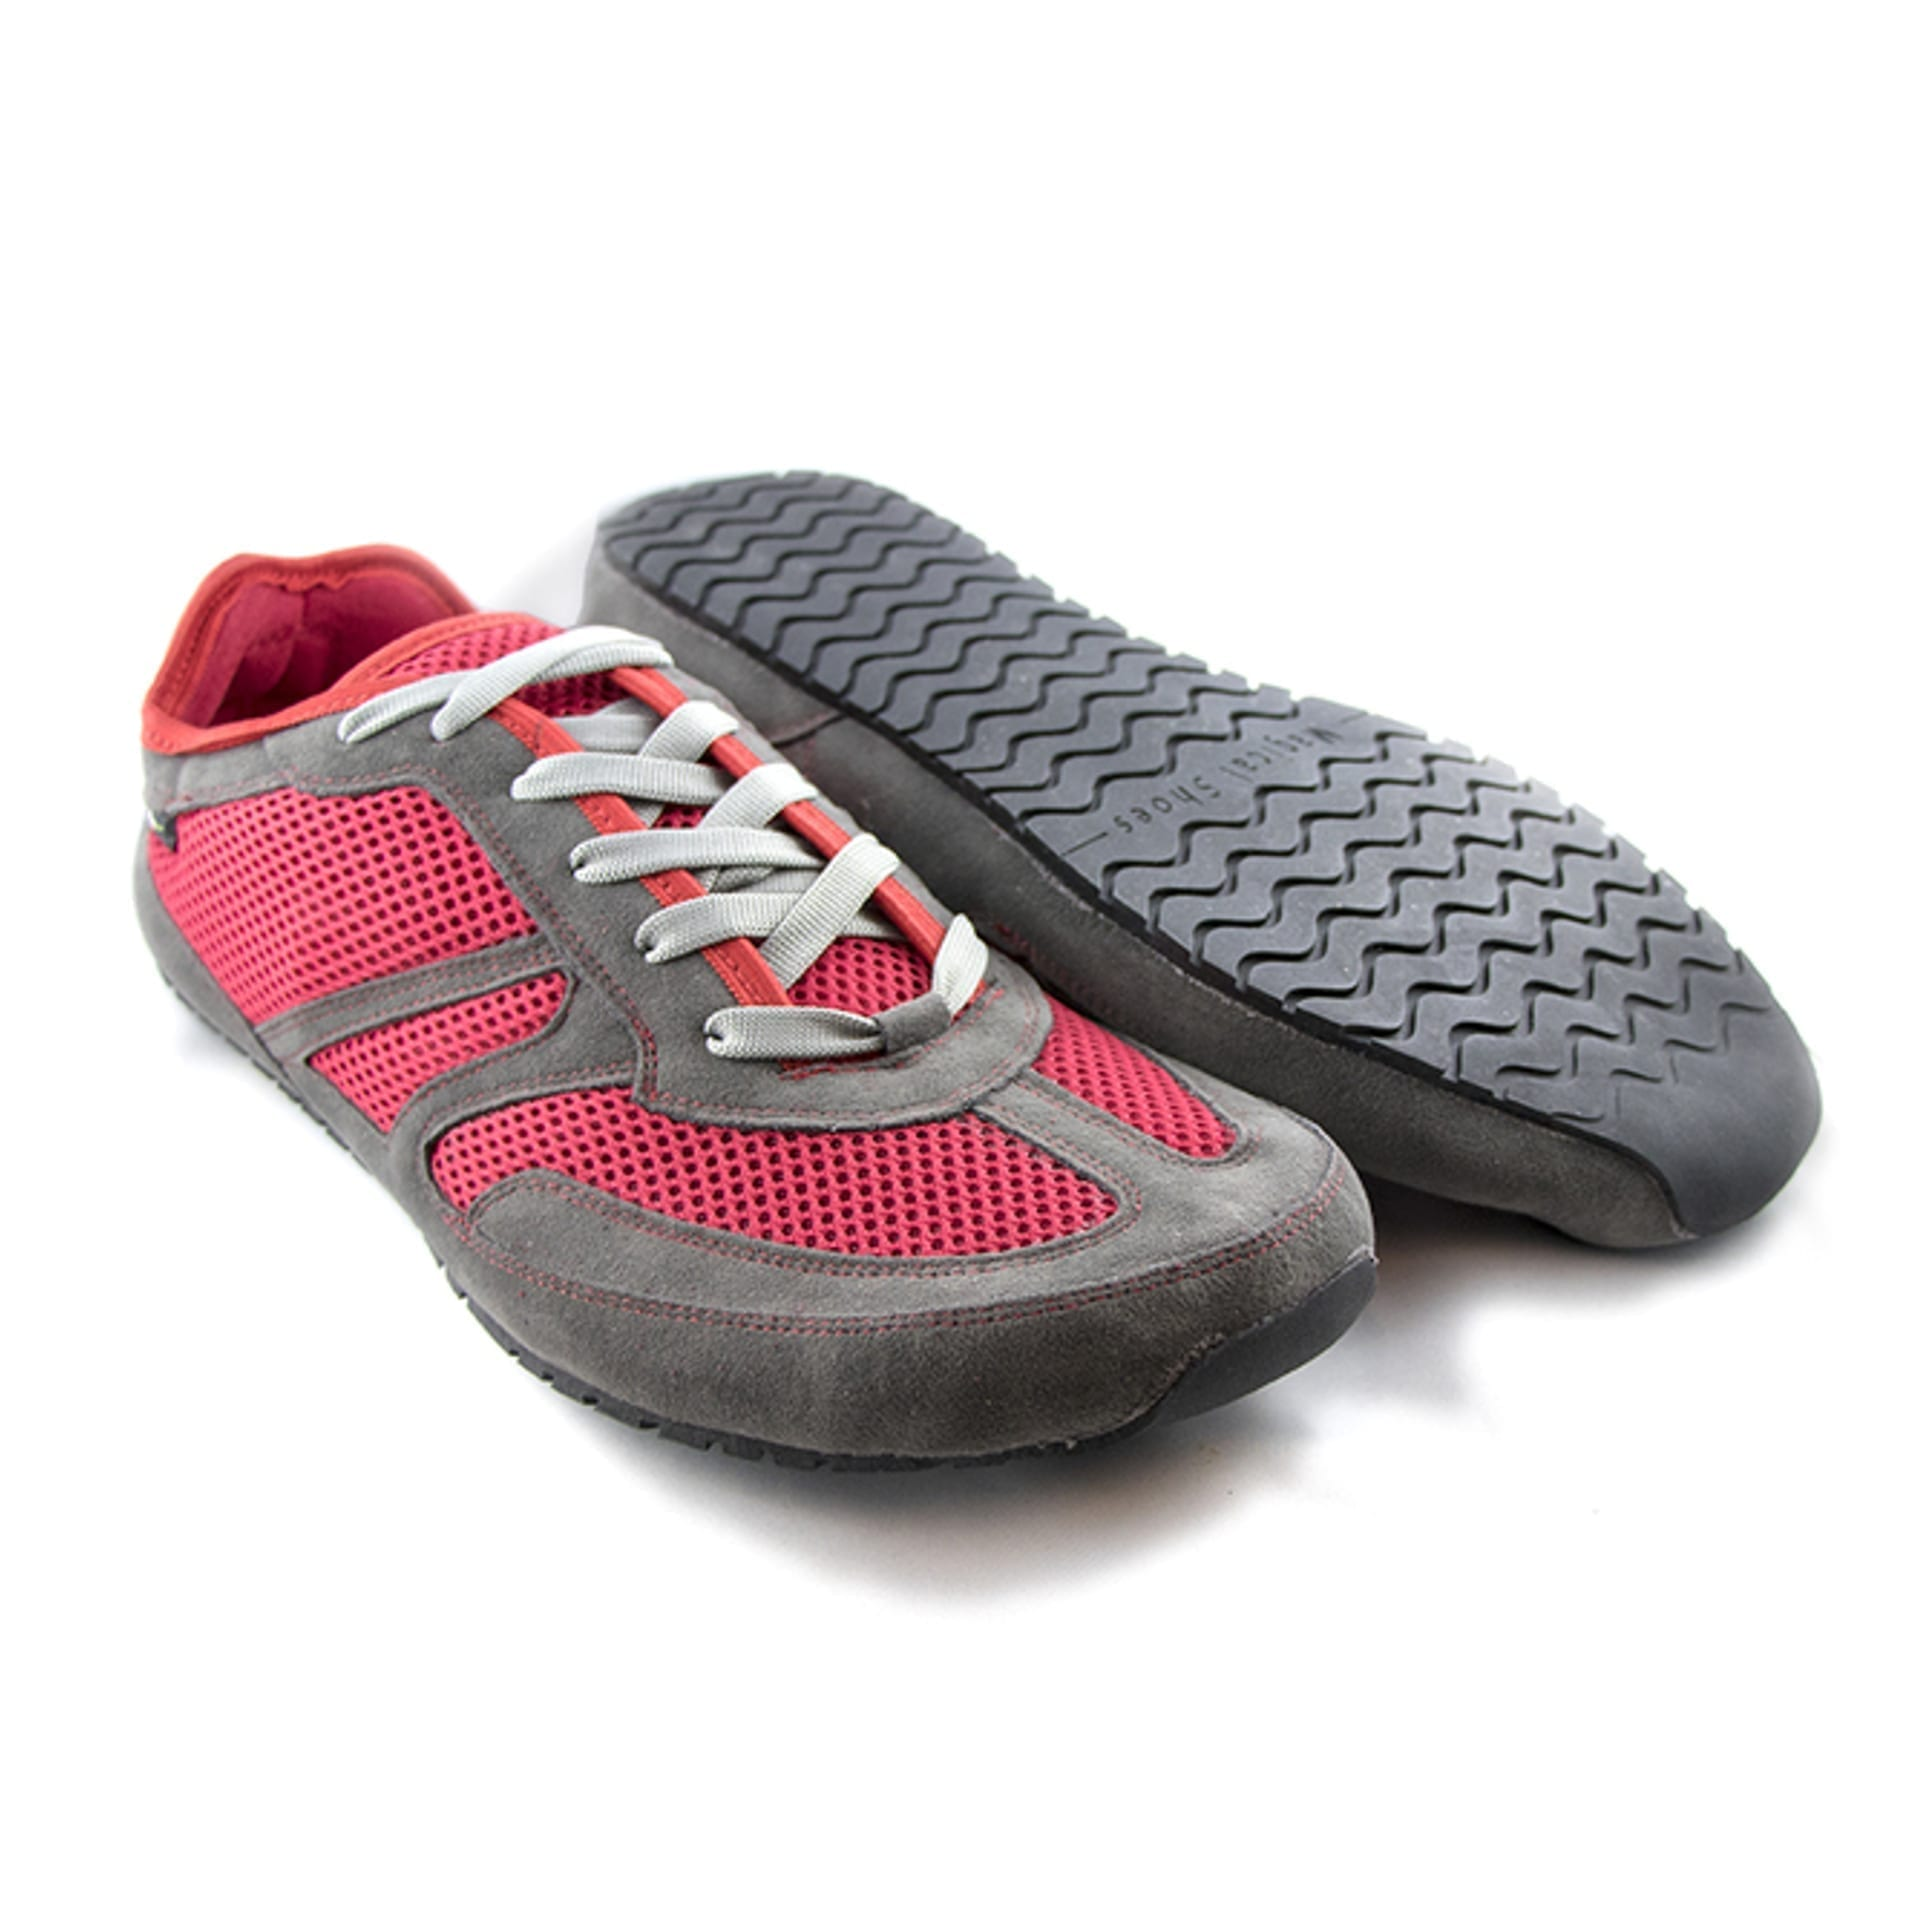 Kids Barefoot Running Shoes